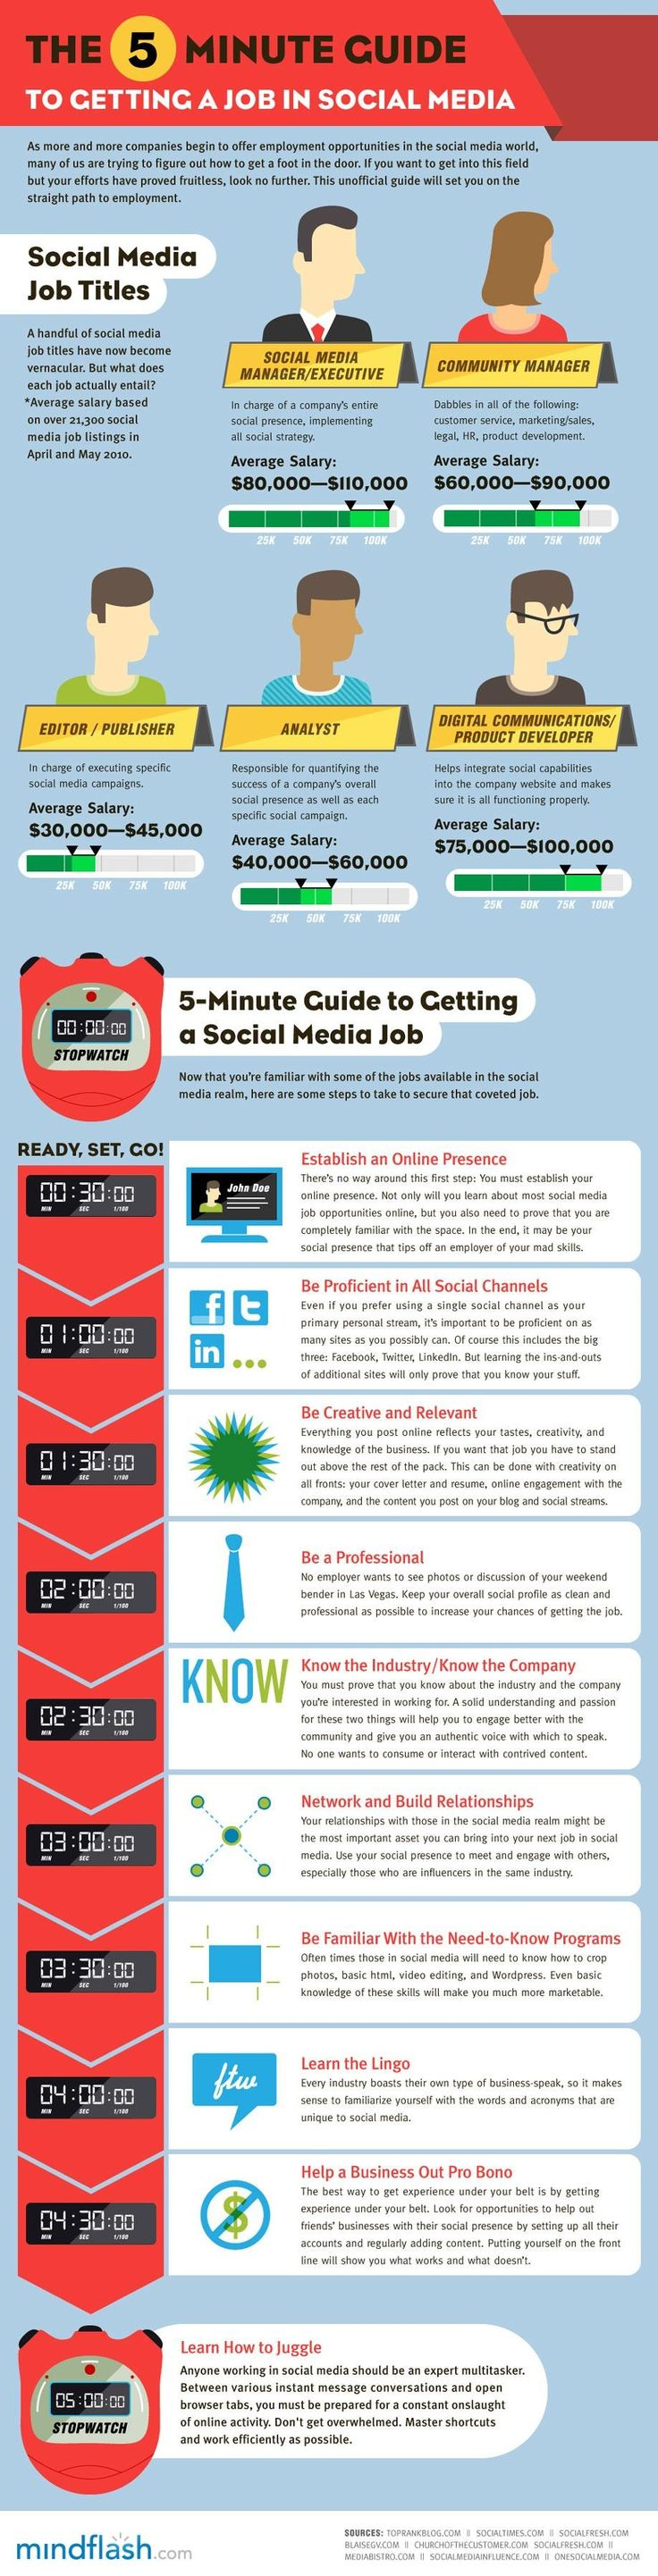 Charming 5 Minute Guide To Getting A Job In Social Media [INFOGRAPHIC]